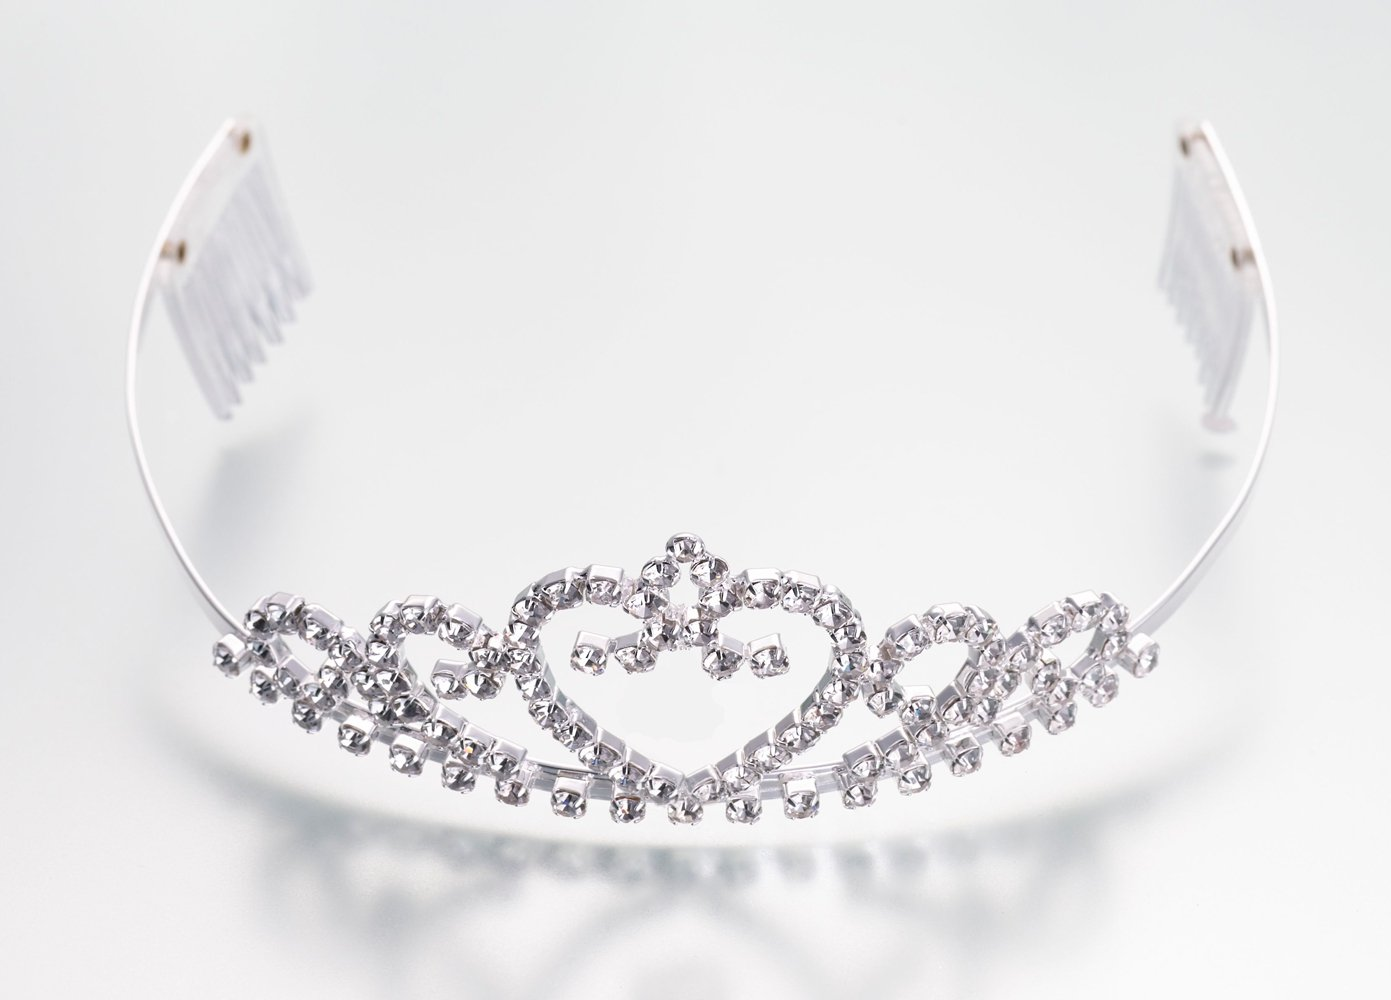 Heart Rhinestone Bridal Tiara by Lillian Rose